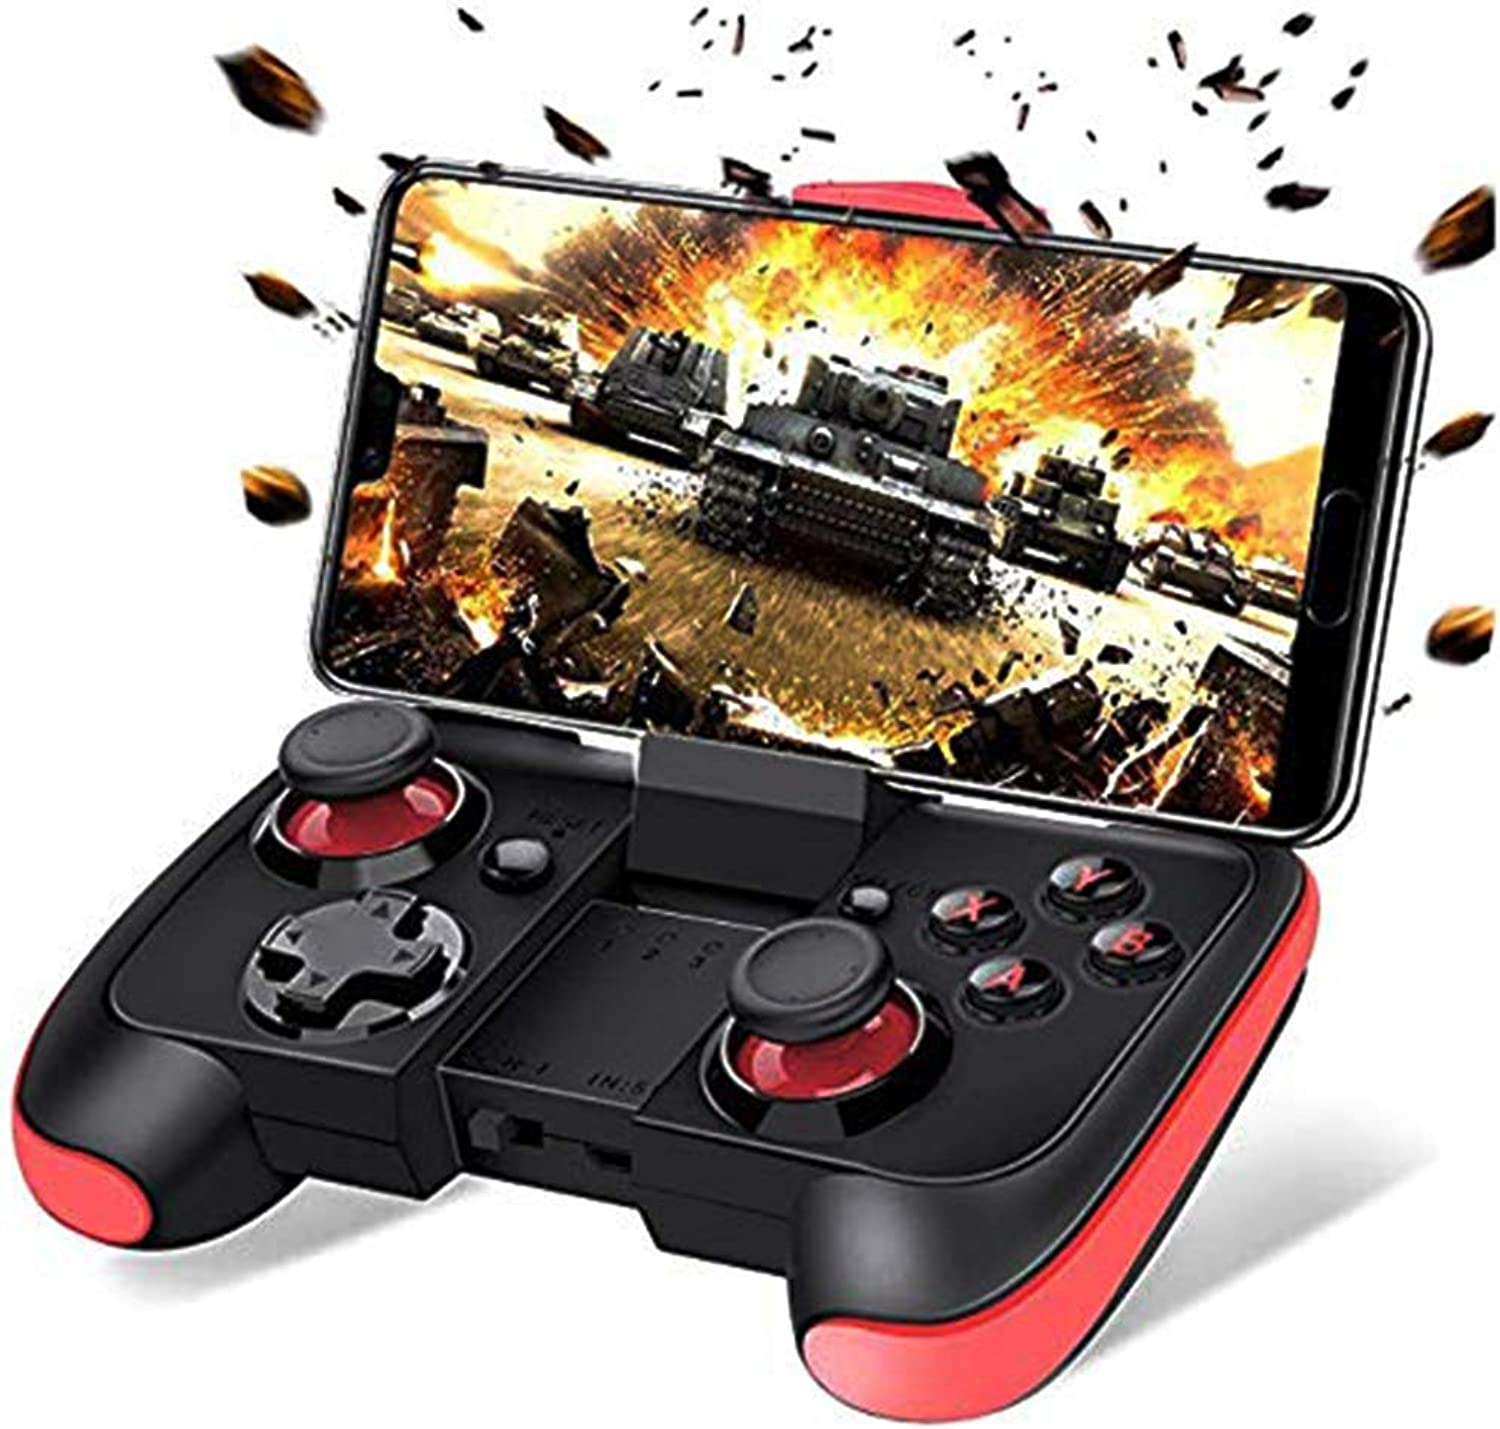 ZQYR GAME  Android Controller Ultra Thin blueetooth Gamepad Joystick Gaming android Phone Tablet TV Box VR Devices Emulator, QLL2